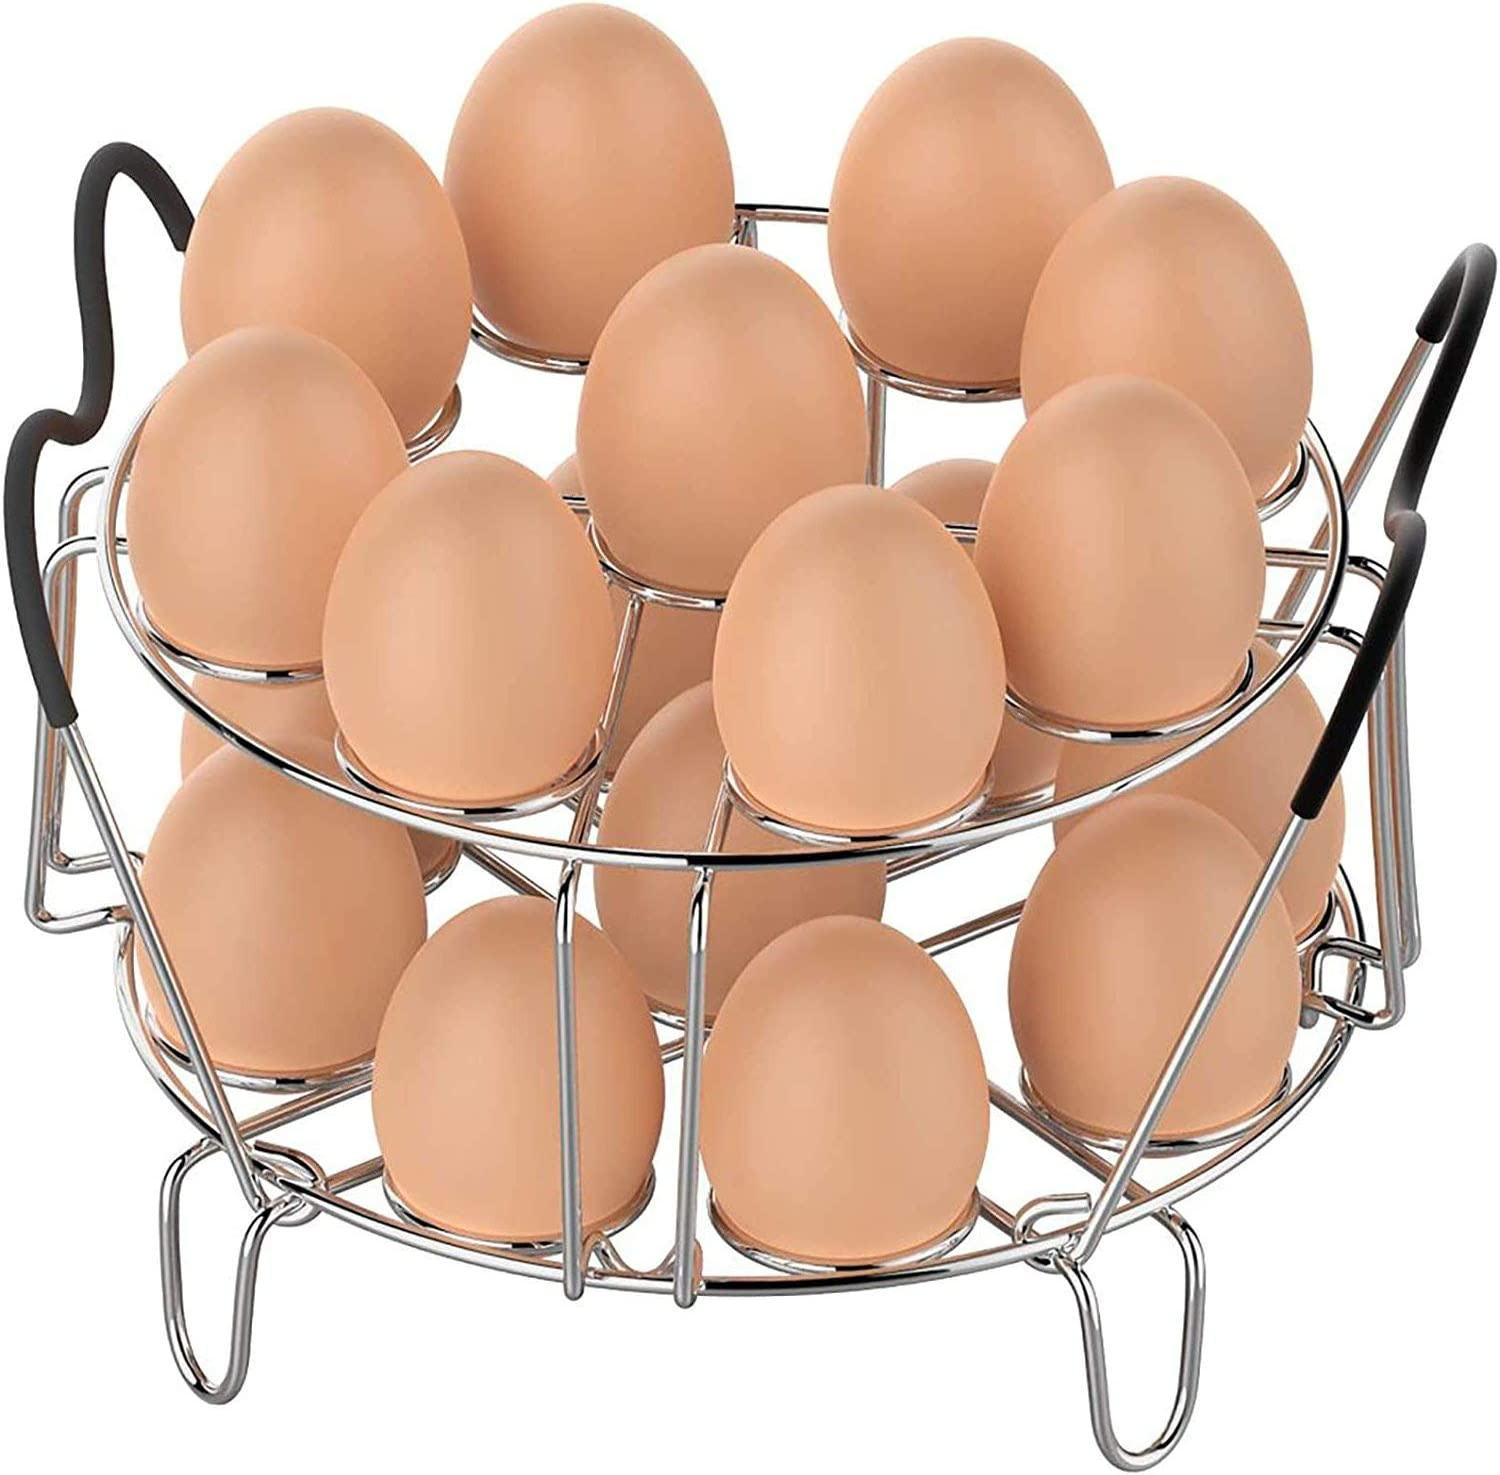 Egg Steamer Rack with Heat Resistant Silicone Handles Instant Pot, Stainless Steel Kitchen Trivet Compatible for Ninja Foodi Pressure Cooker Acessories 6.5 Qt & 8 Qt, 18 Egg Cooking Rack,Stackable,